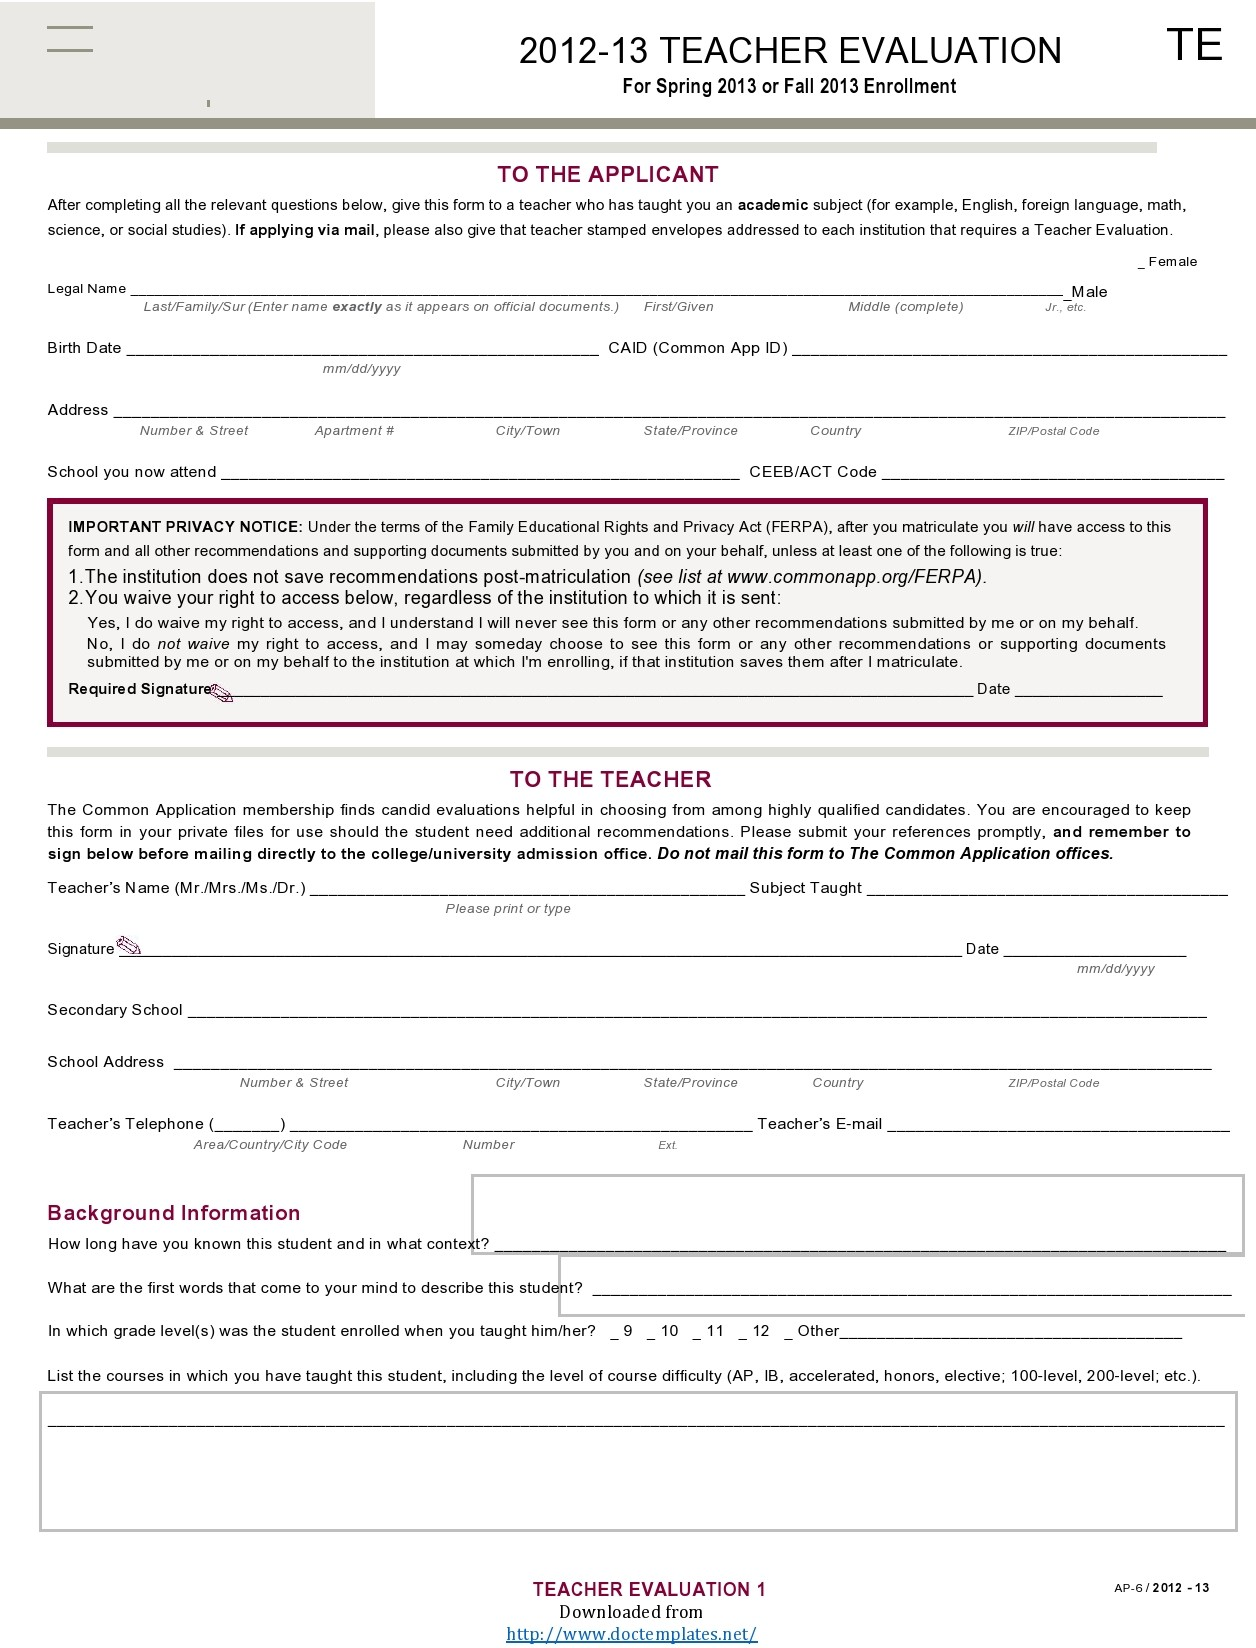 Free teacher evaluation form 28